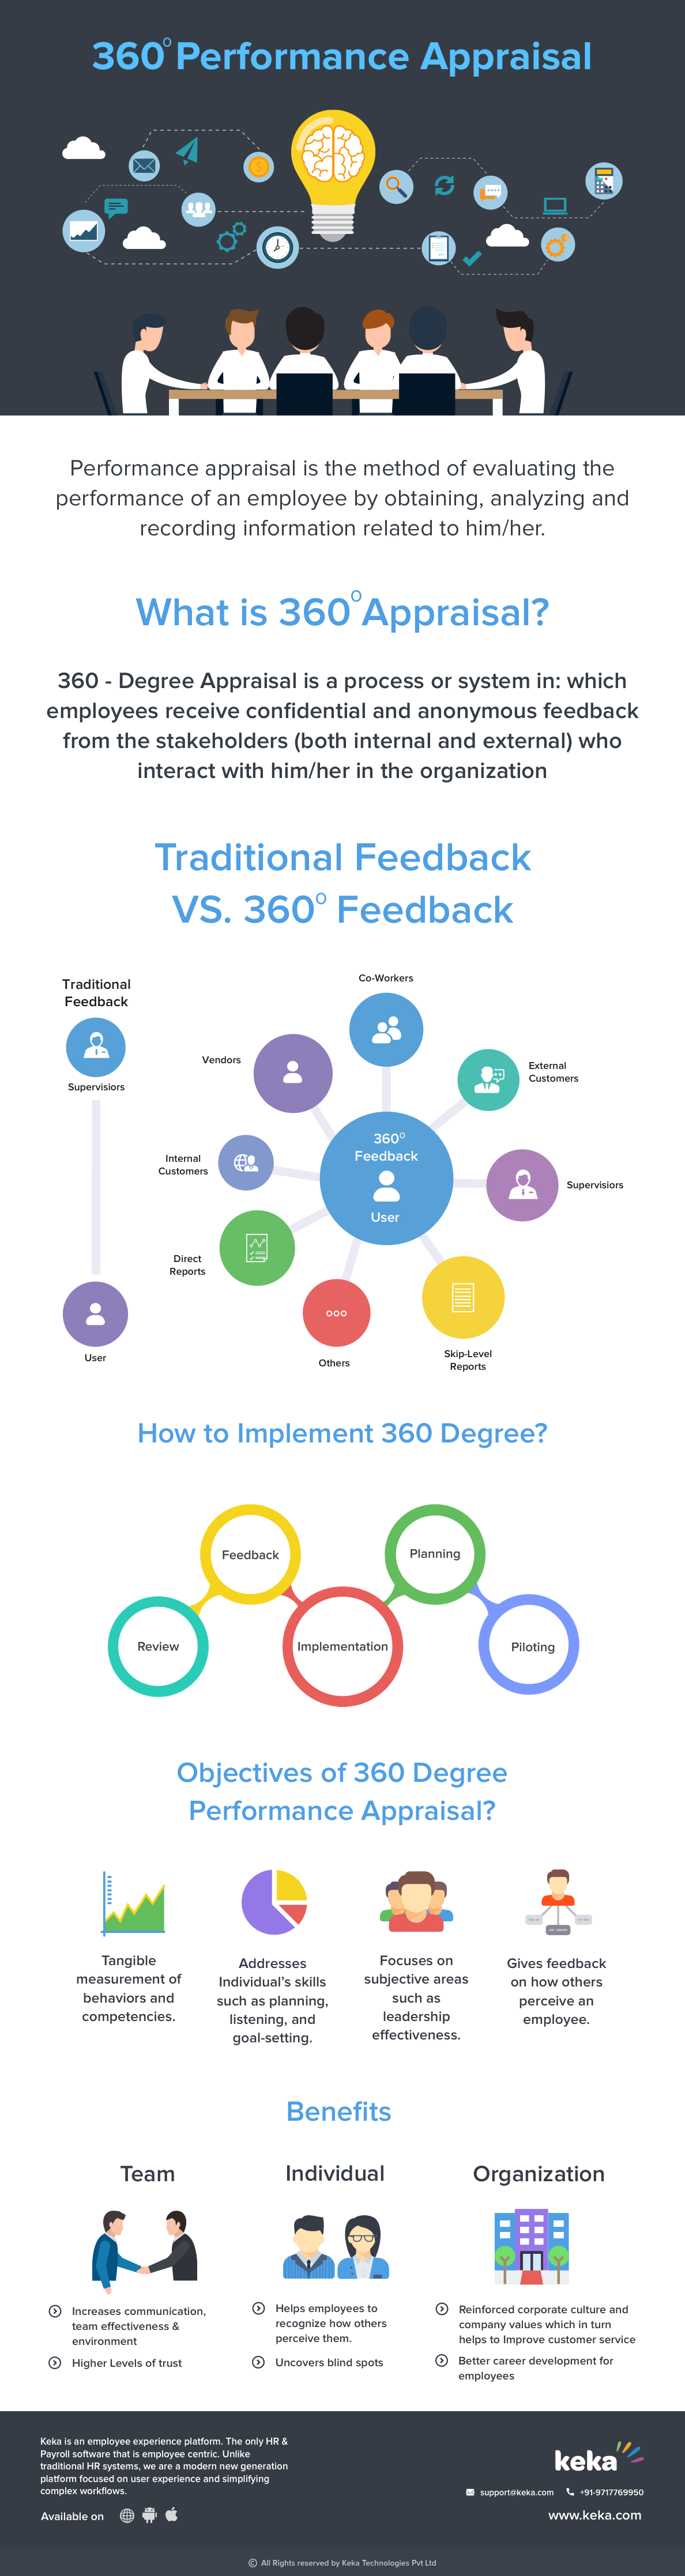 the history of 360 degree feedback performance appraisa Sample 360 degree feedback surveys - how 360 surveys differ for senior leaders and non managers makes performance review a meaningful experience.